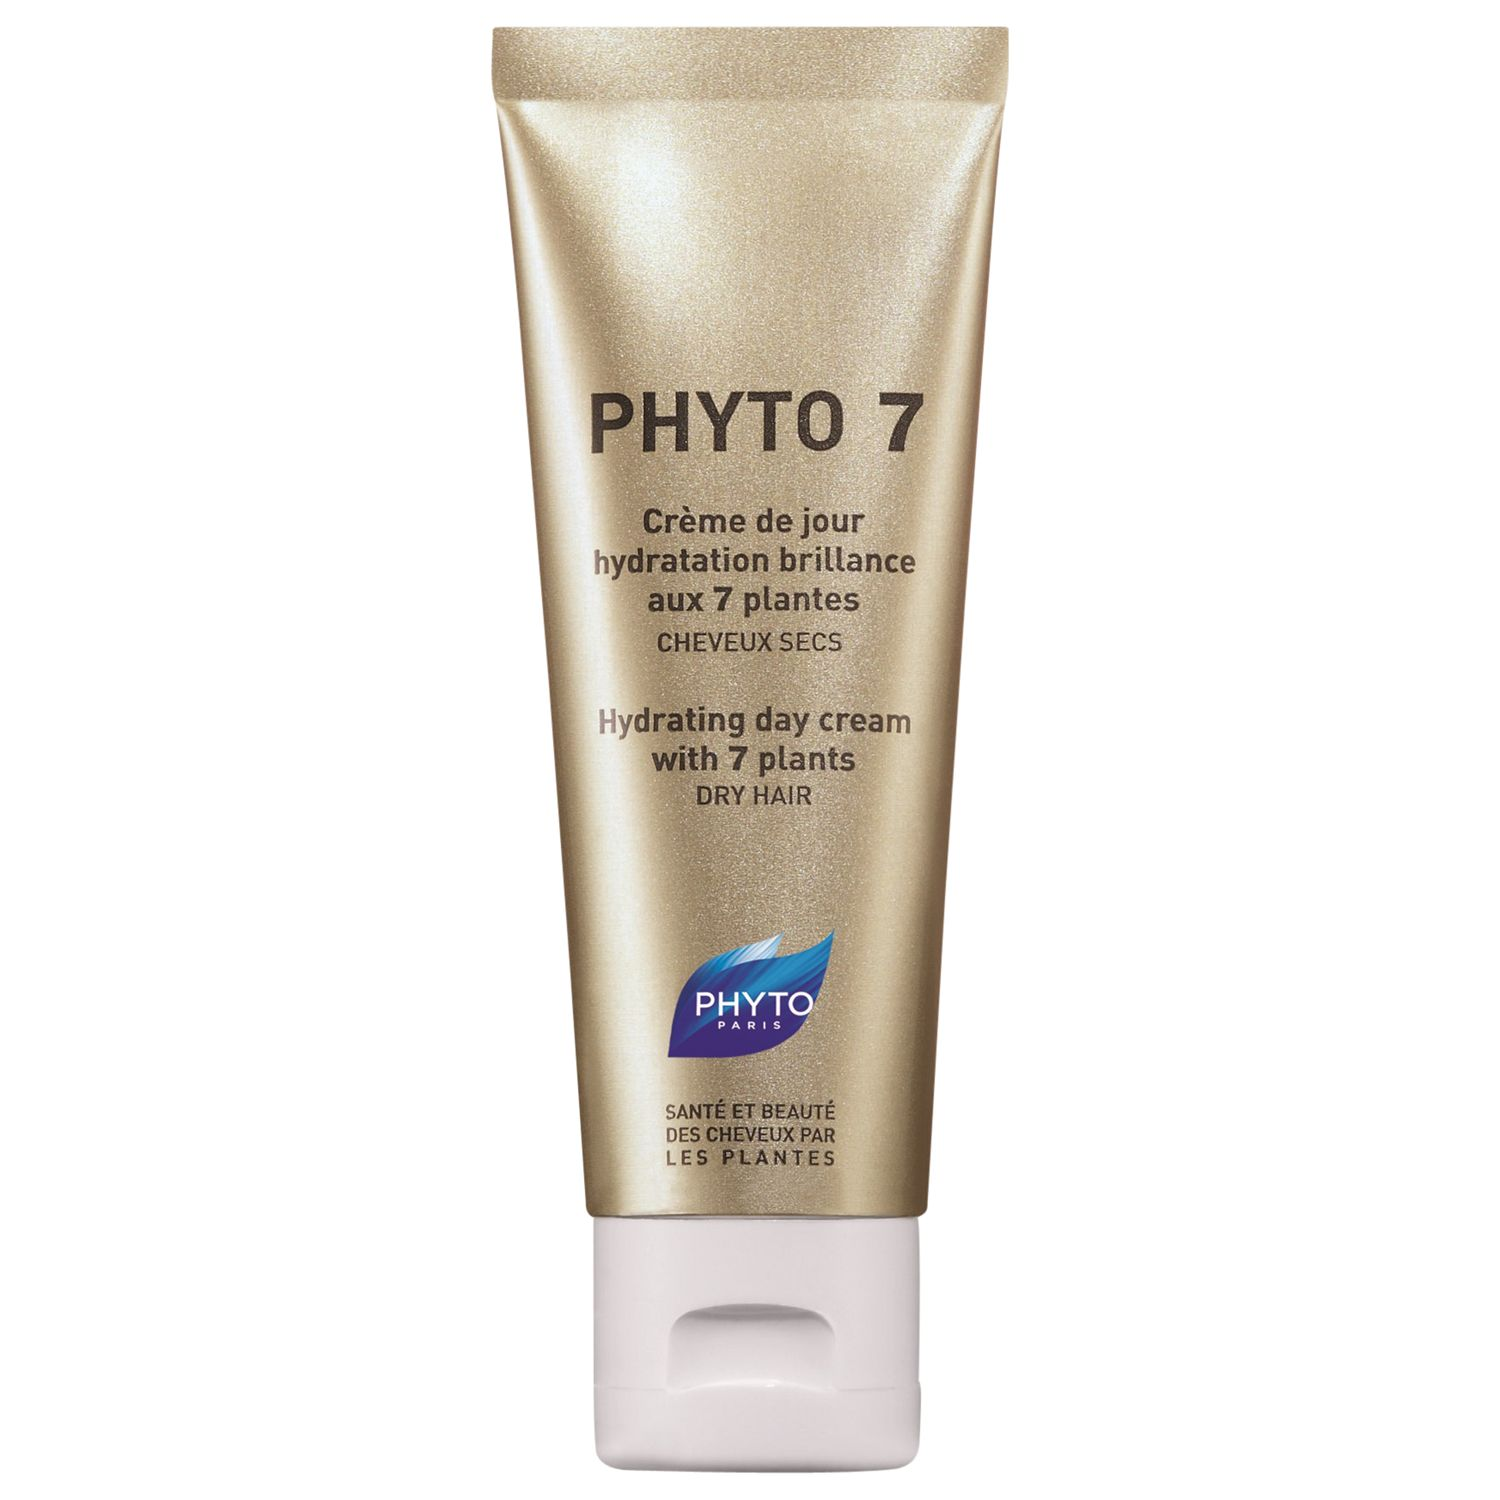 Phyto Phyto 7 Hydrating Day Cream, 50ml